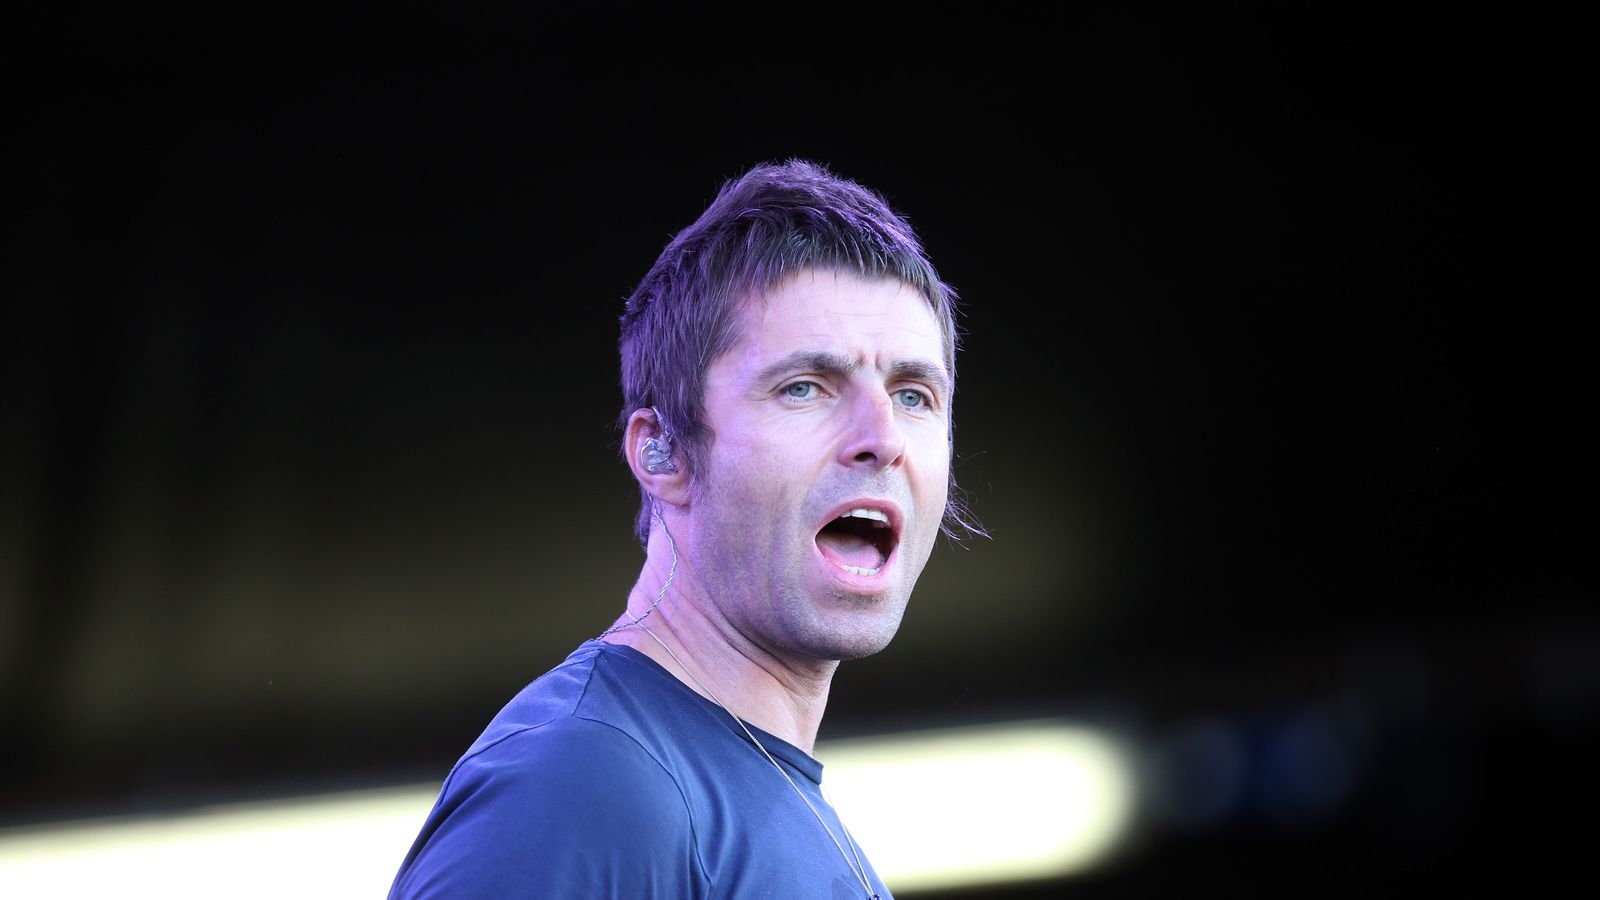 Liam Gallagher To Give Profits From Manchester Solo Gig To Attack